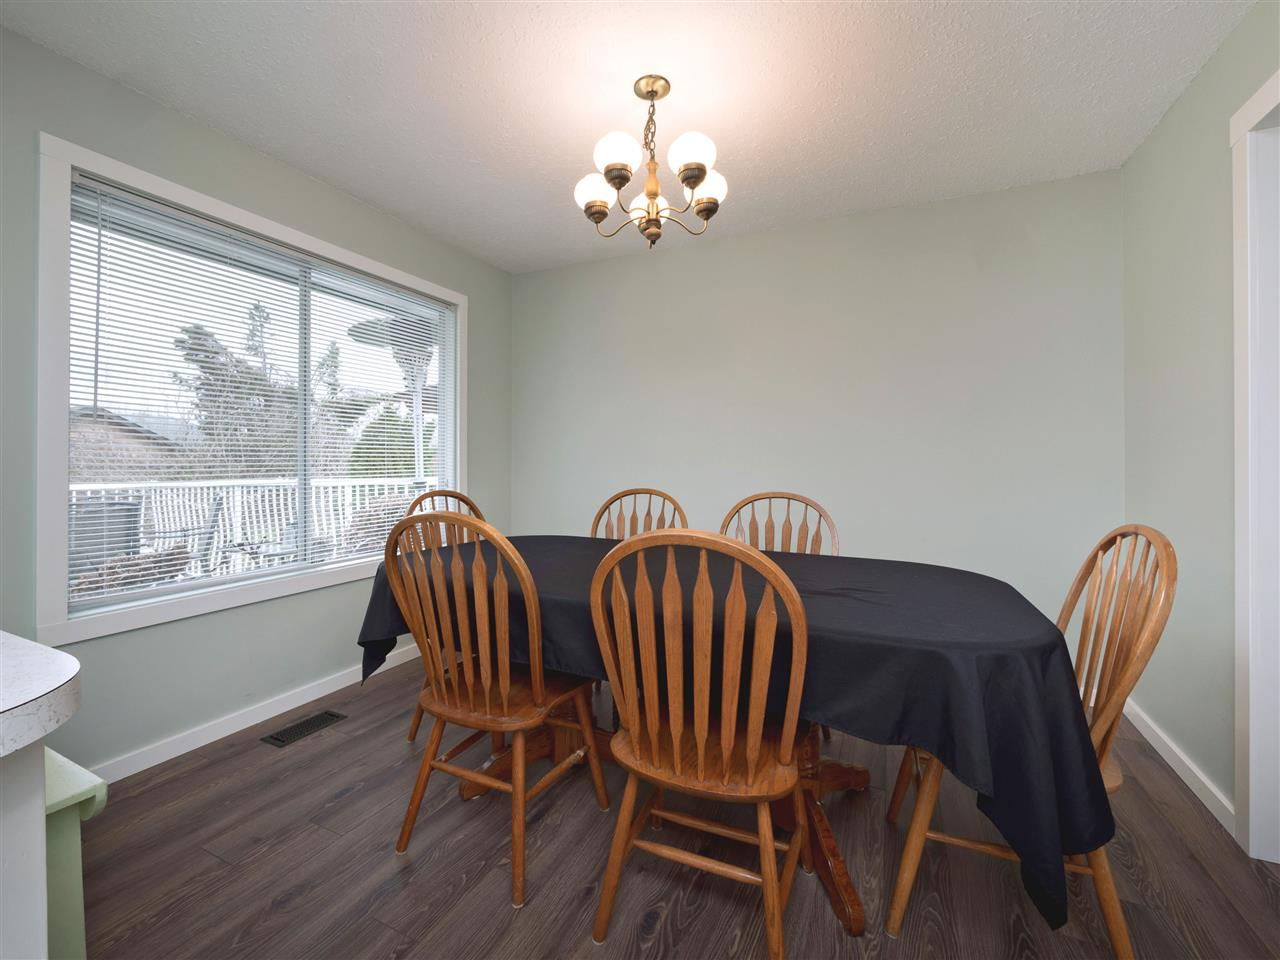 Photo 11: Photos: 33131 CHERRY Avenue in Mission: Mission BC House for sale : MLS® # R2236875